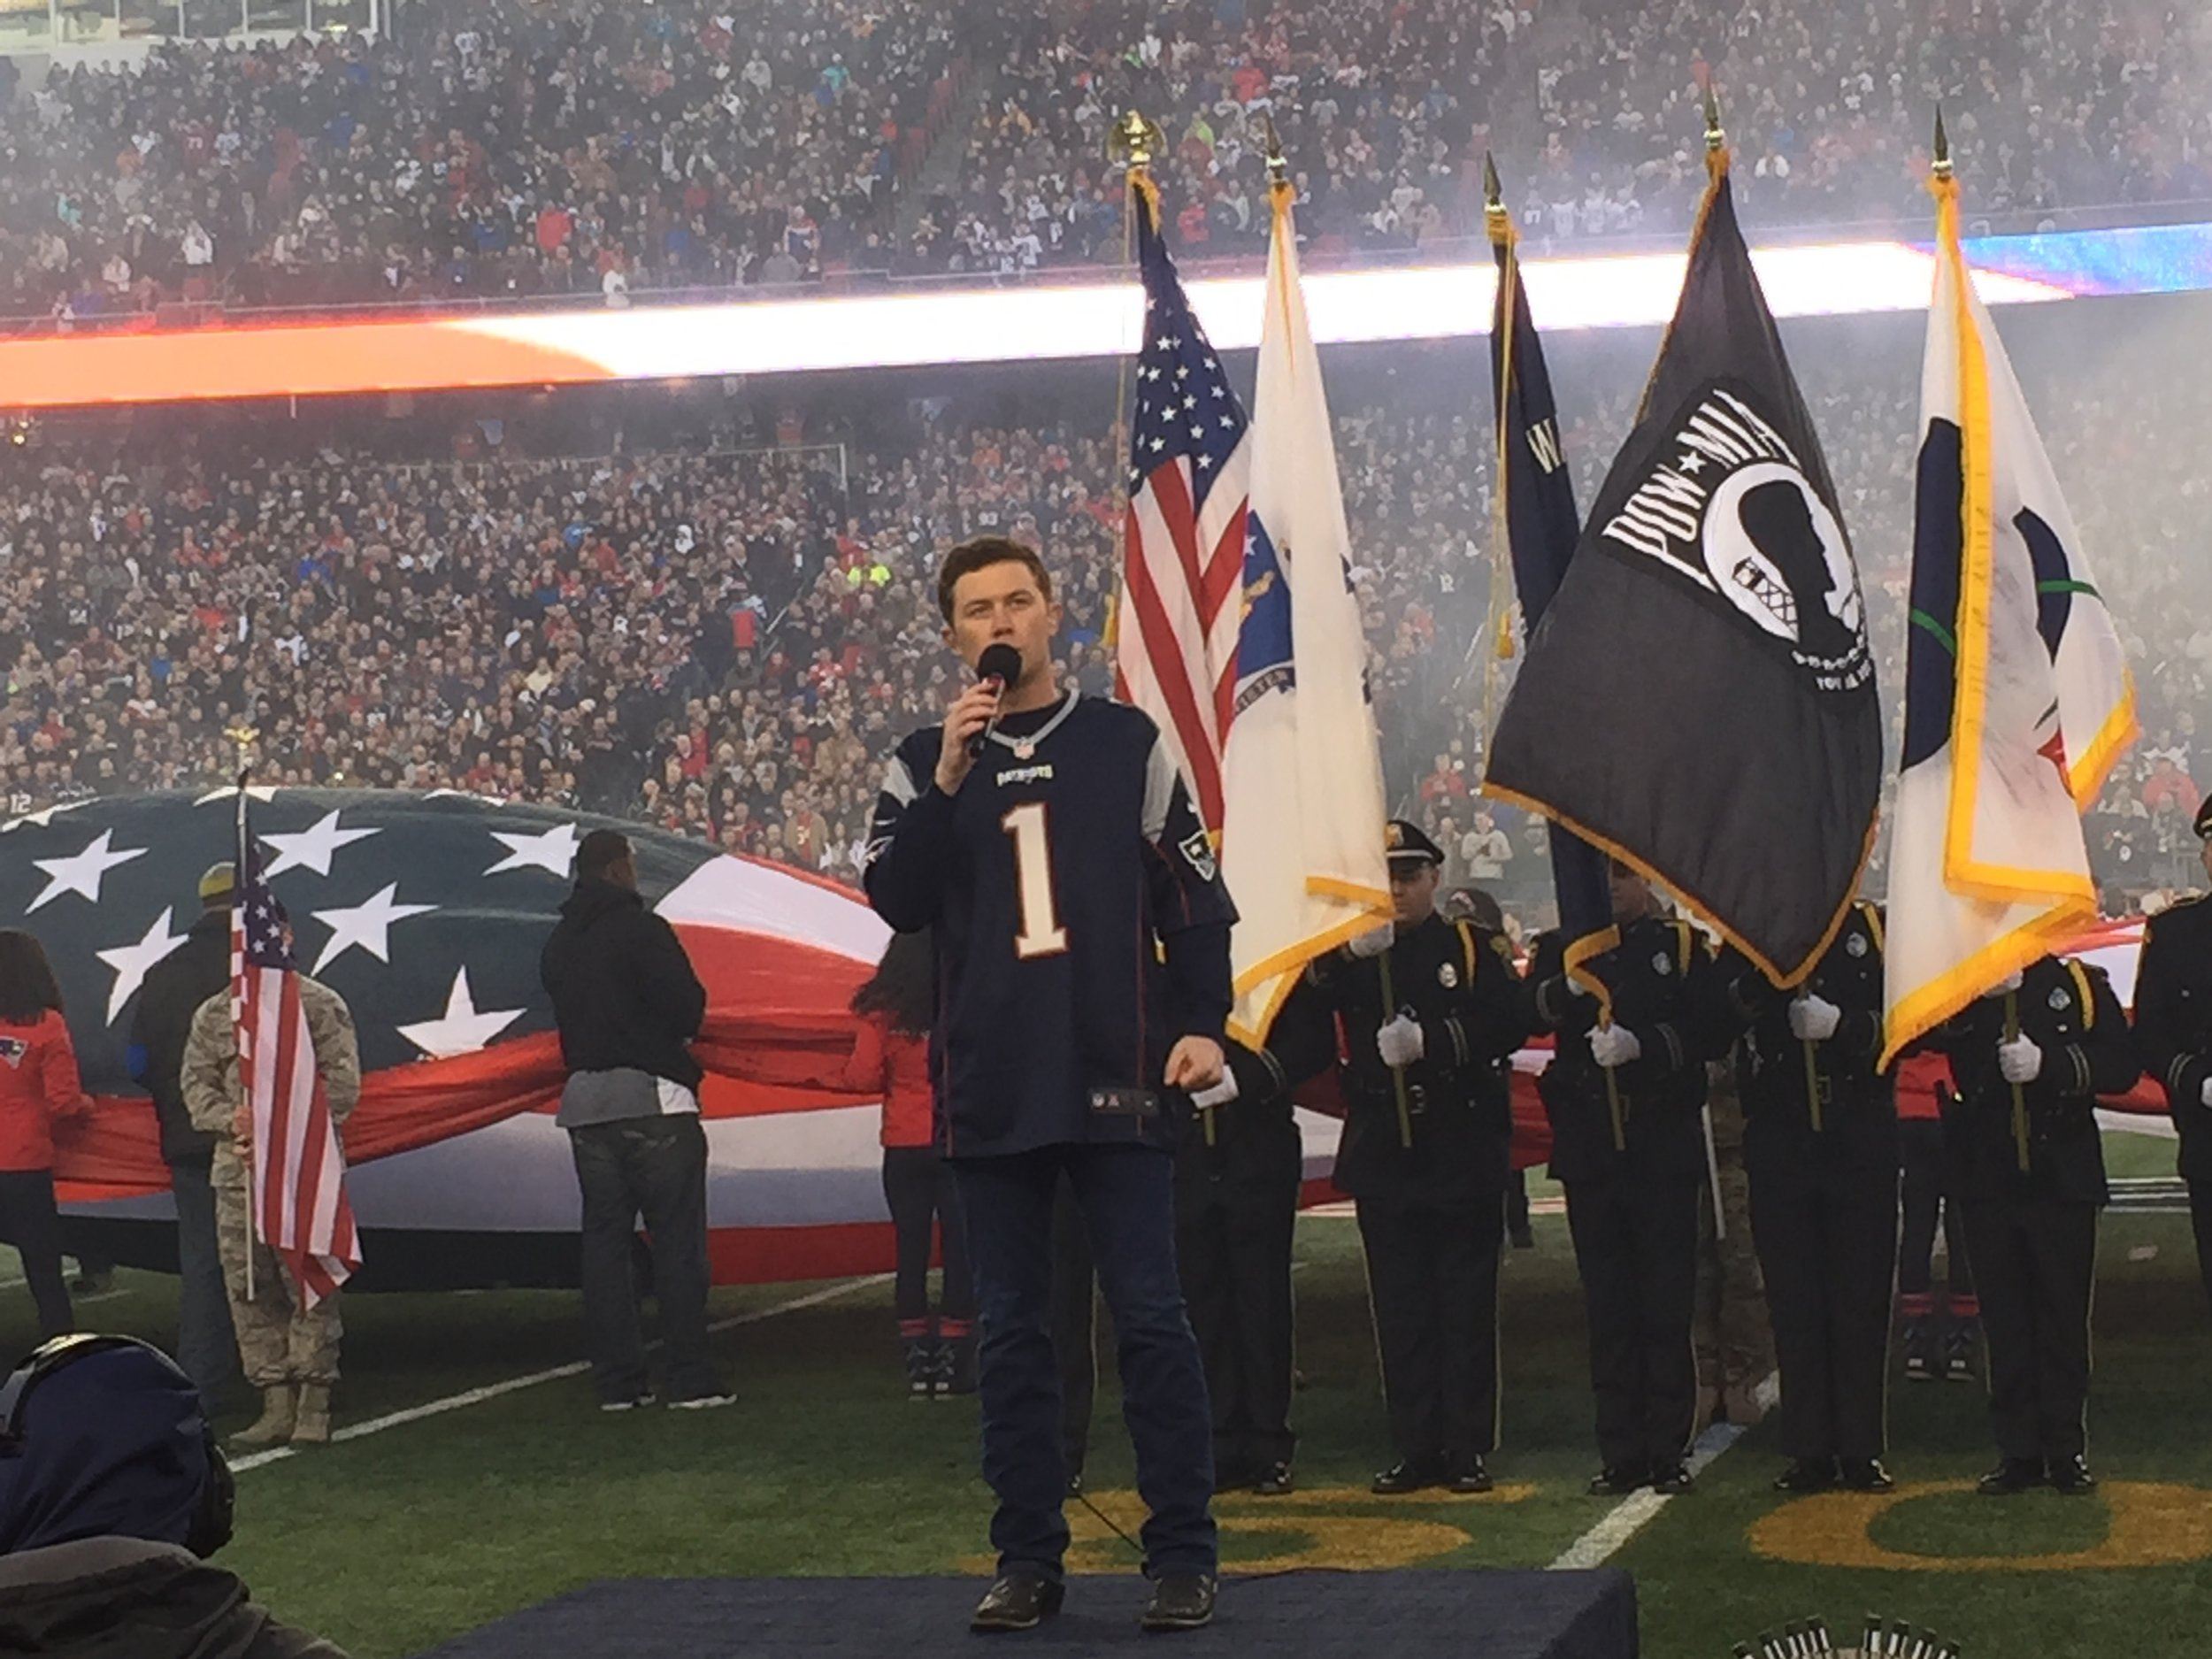 Scotty McCreery performing the National Anthem at Gillette Stadium in Foxboro, MA on Jan. 16, 2016 before the New England Patriots vs. Kansas City Chiefs game. (Photo Credit: Scott Stem)